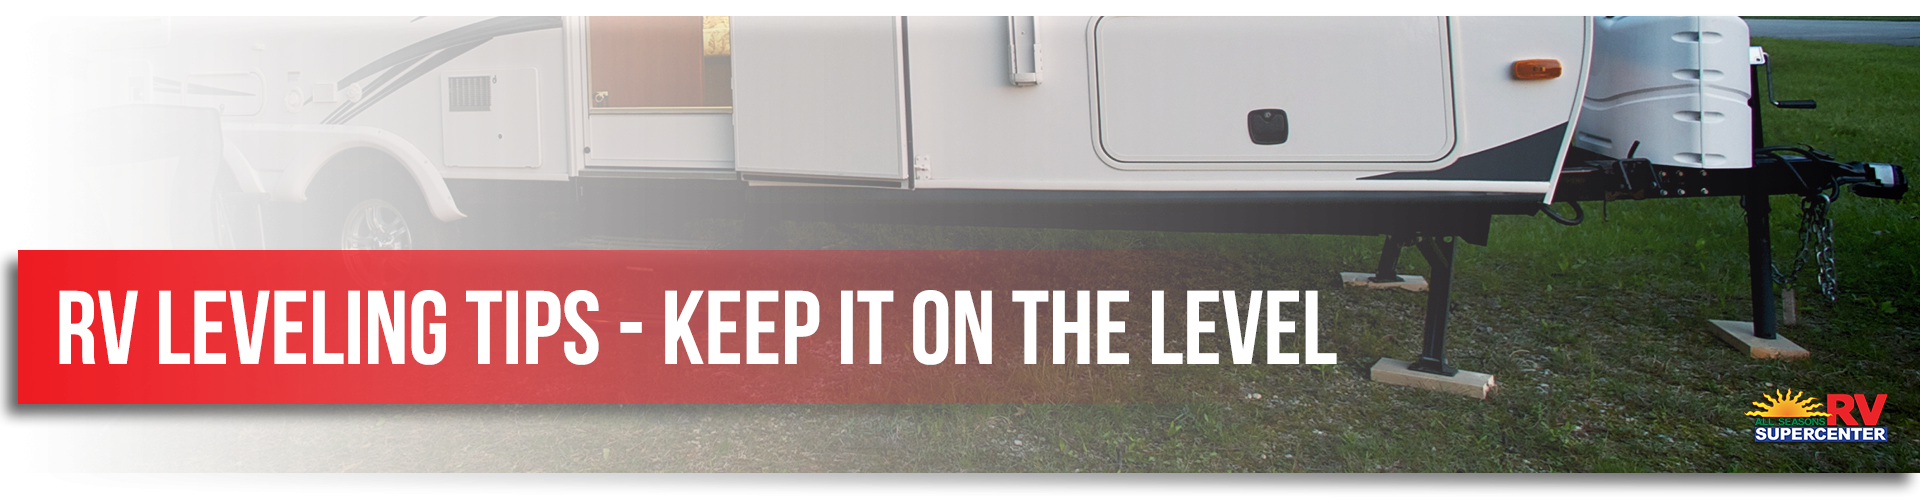 RV Leveling Tips - Keep It on the Level